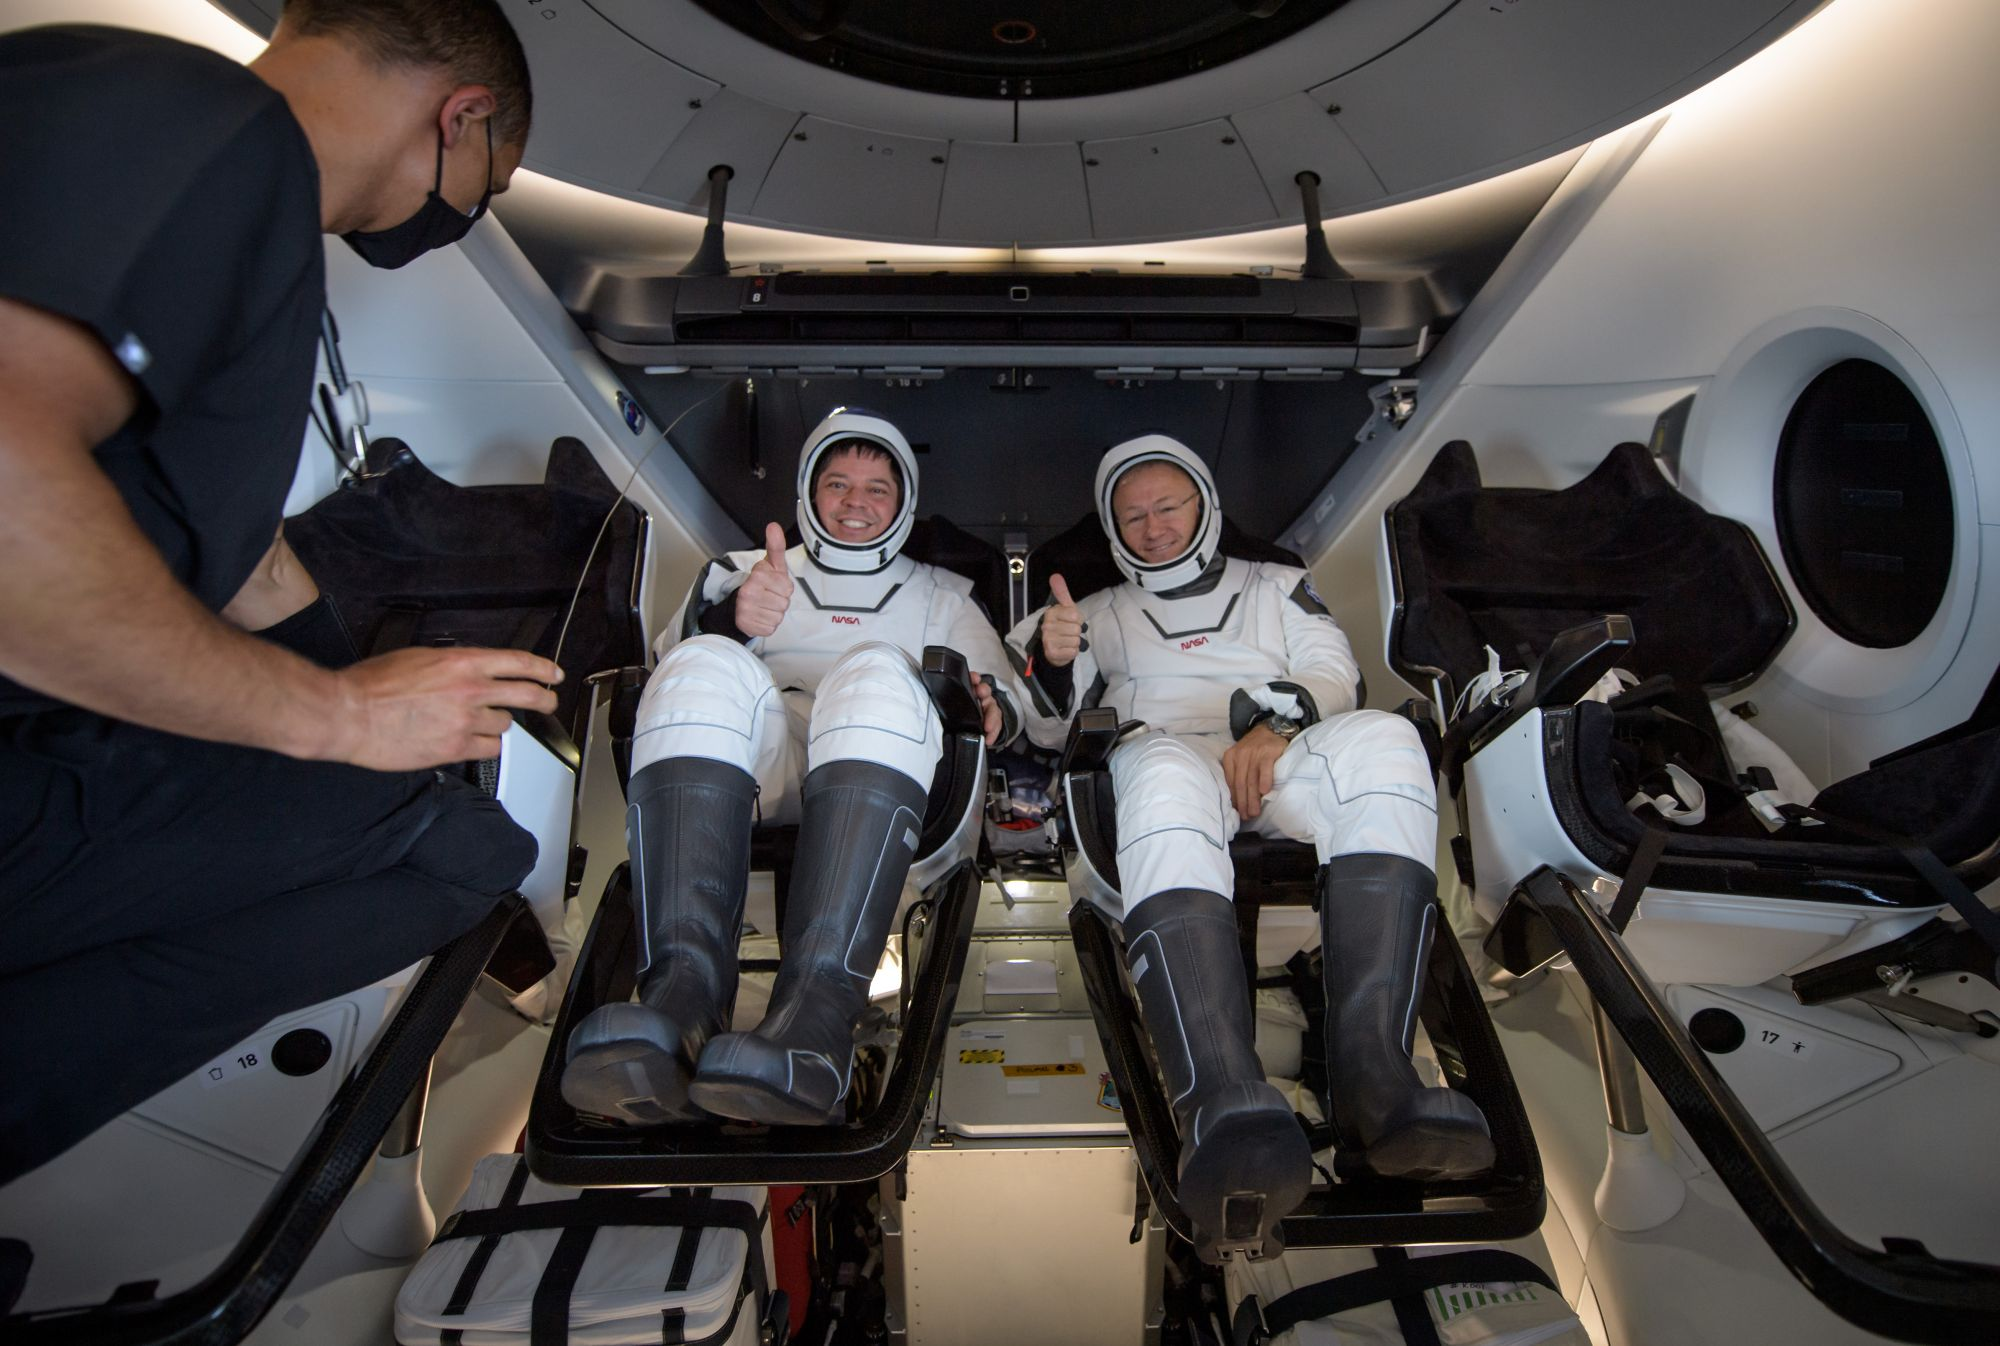 NASA astronauts Robert Behnken, left, and Douglas Hurley are seen inside the SpaceX Crew Dragon Endeavour spacecraft onboard the SpaceX GO Navigator recovery ship shortly after having landed in the Gulf of Mexico off the coast of Pensacola, Florida, Sunday, Aug. 2, 2020. Photo Credit: (NASA/Bill Ingalls)